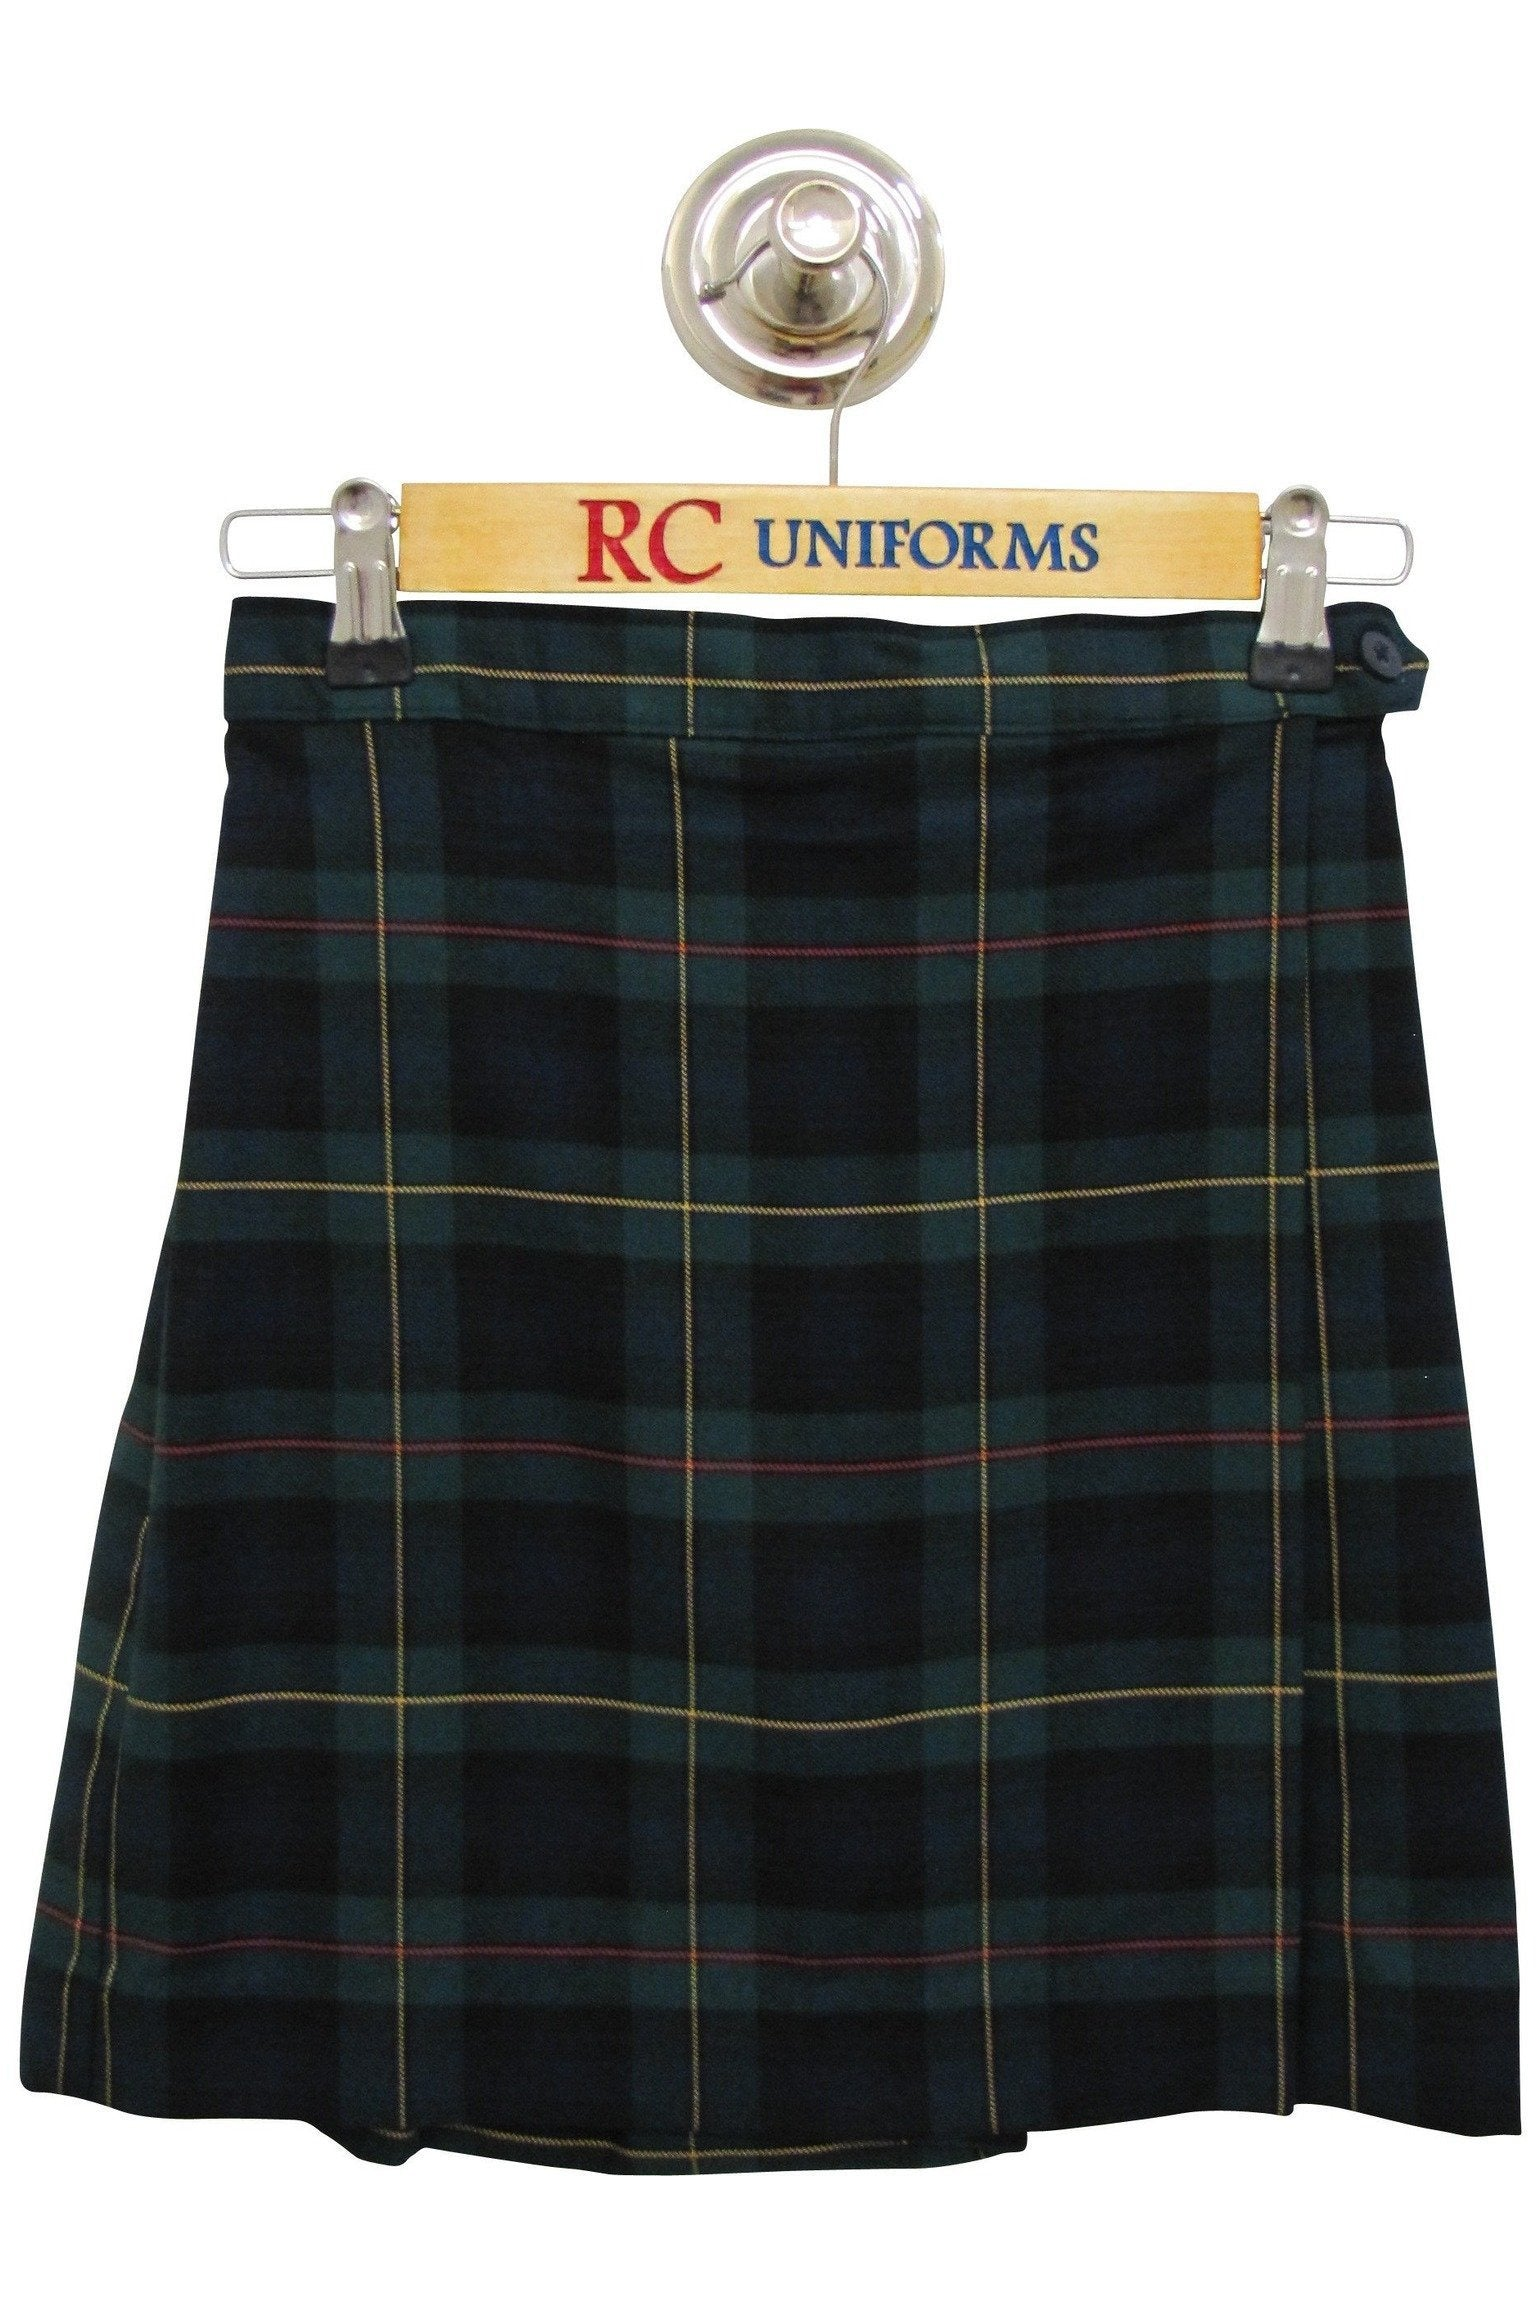 Plaid 832 Flap Skort - RC Uniforms